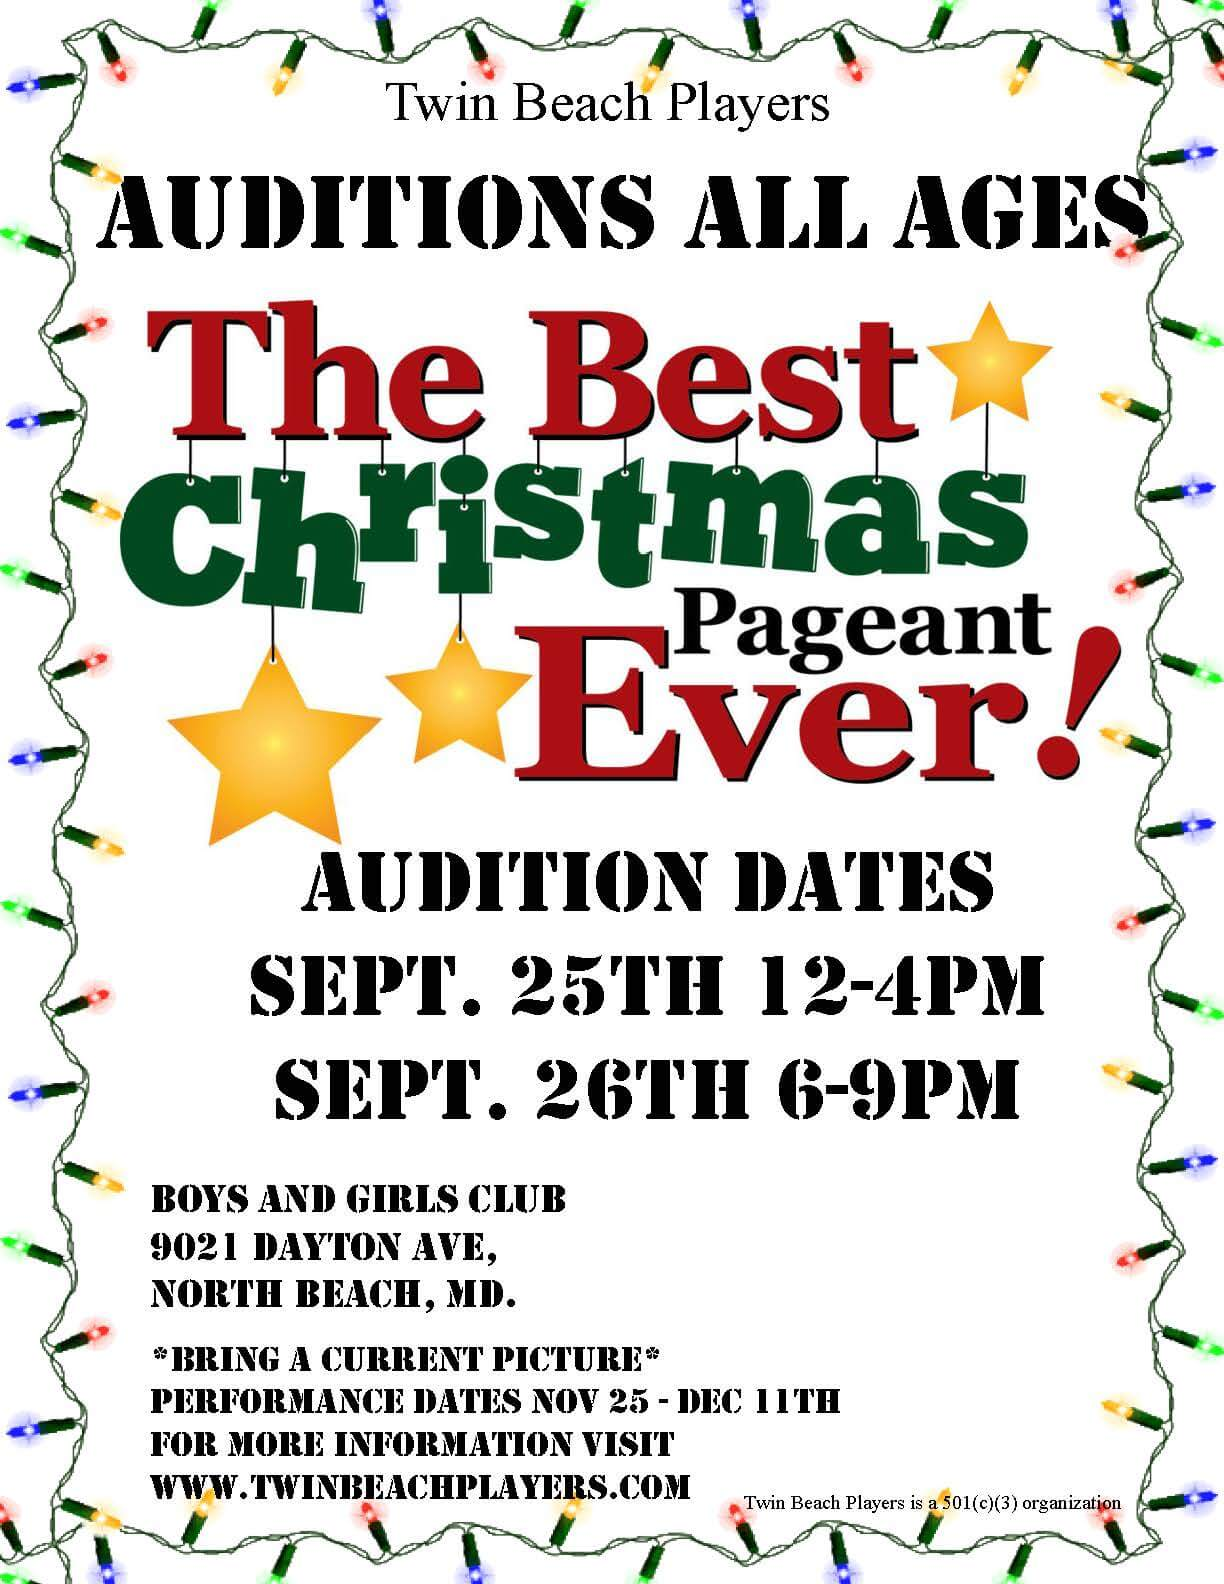 All Ages Audition For The Best Christmas Pageant Ever